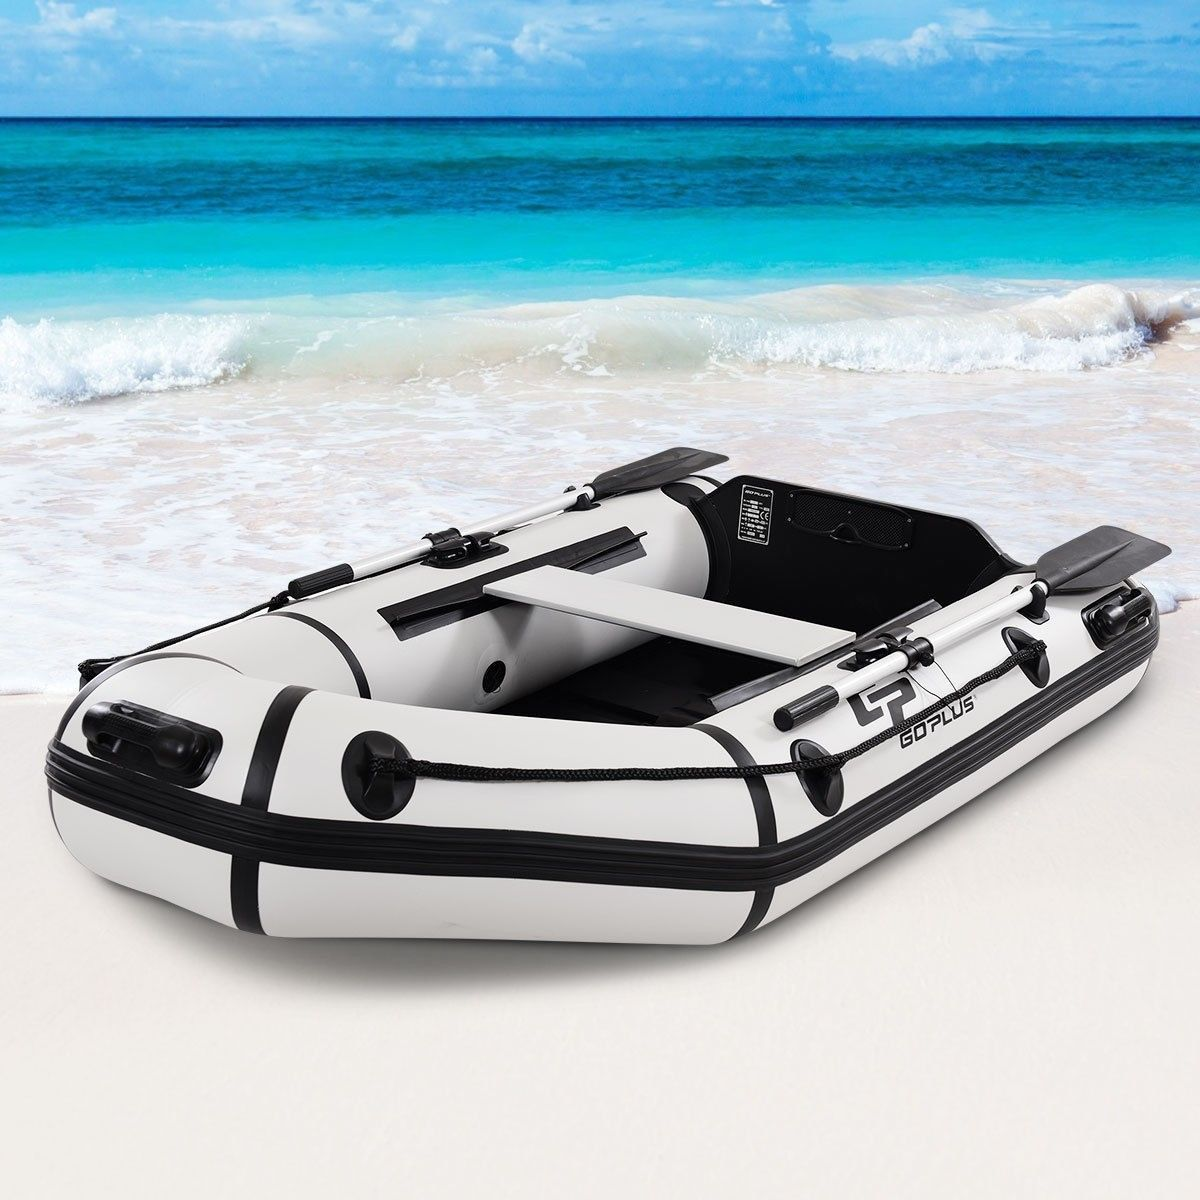 2 Person 7 5 Ft Inflatable Fishing Tender Rafting Dinghy Boat Dinghy Boat Inflatable Boat Dinghy